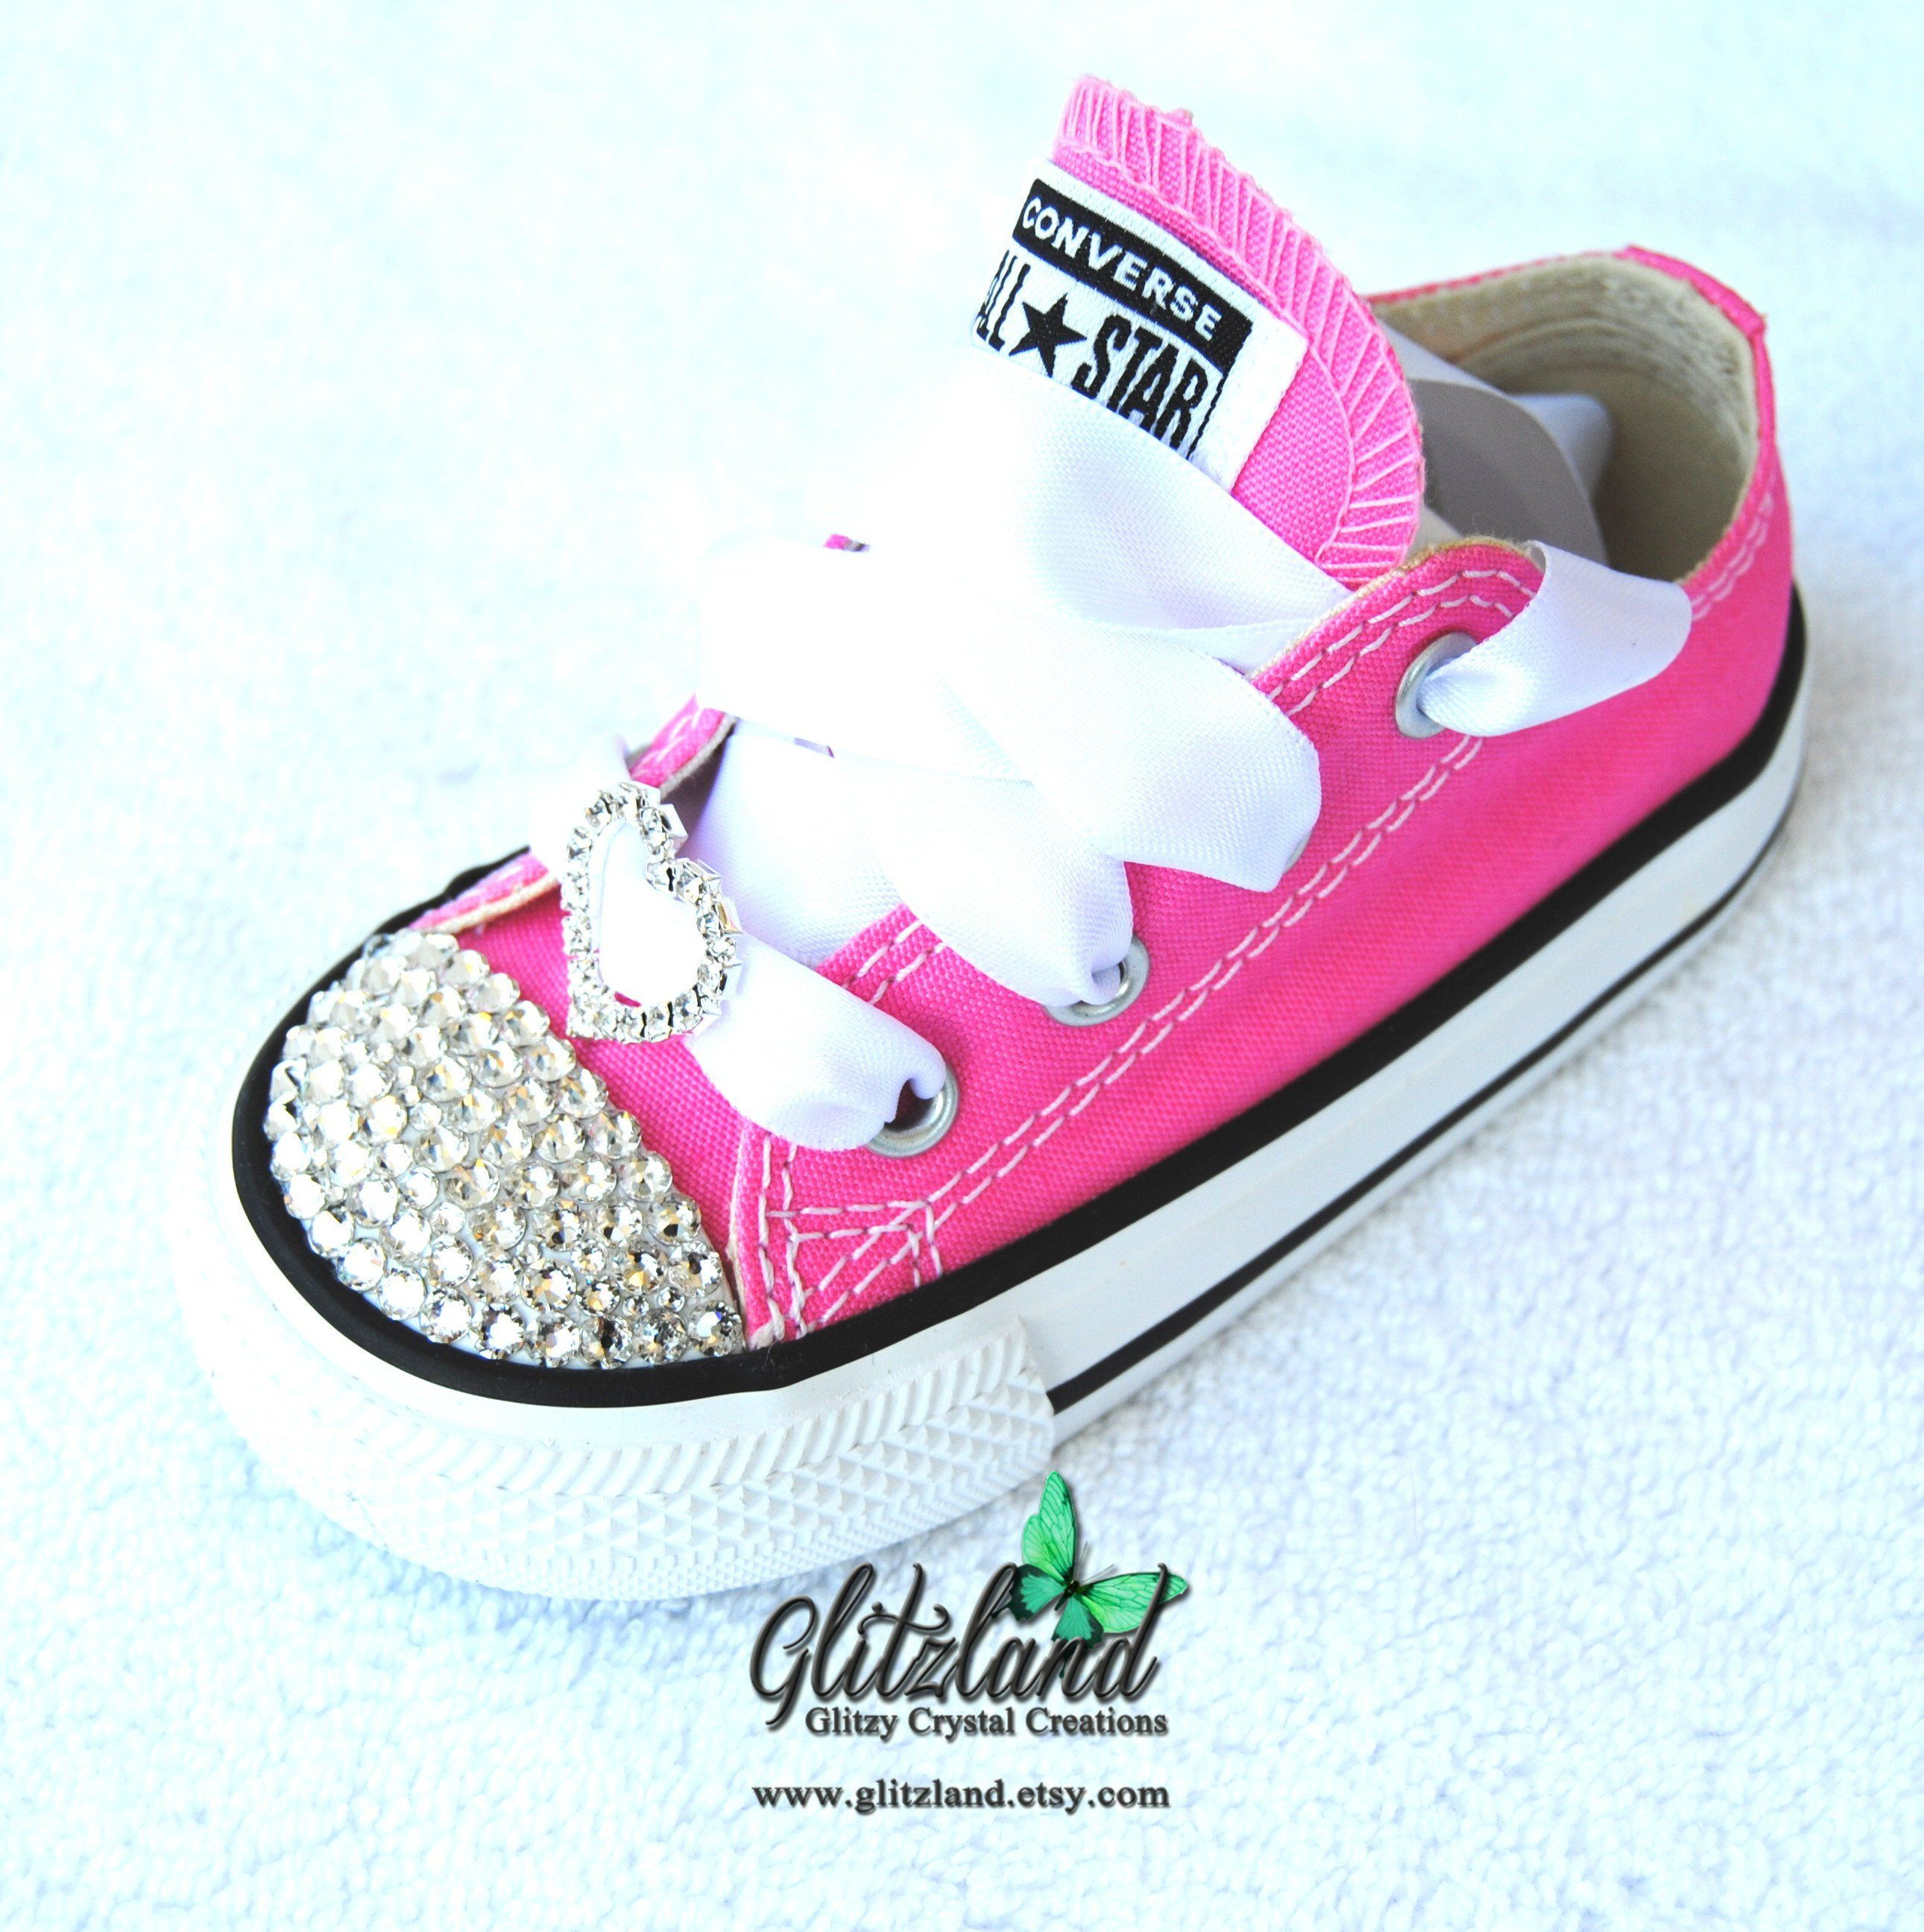 buy popular 3c42a d03fb New At Glitzland  SWAROVSKI® Converse Toddler Chuck Taylor Canvas Sneakers  Customized With Clear SWAROVSKI